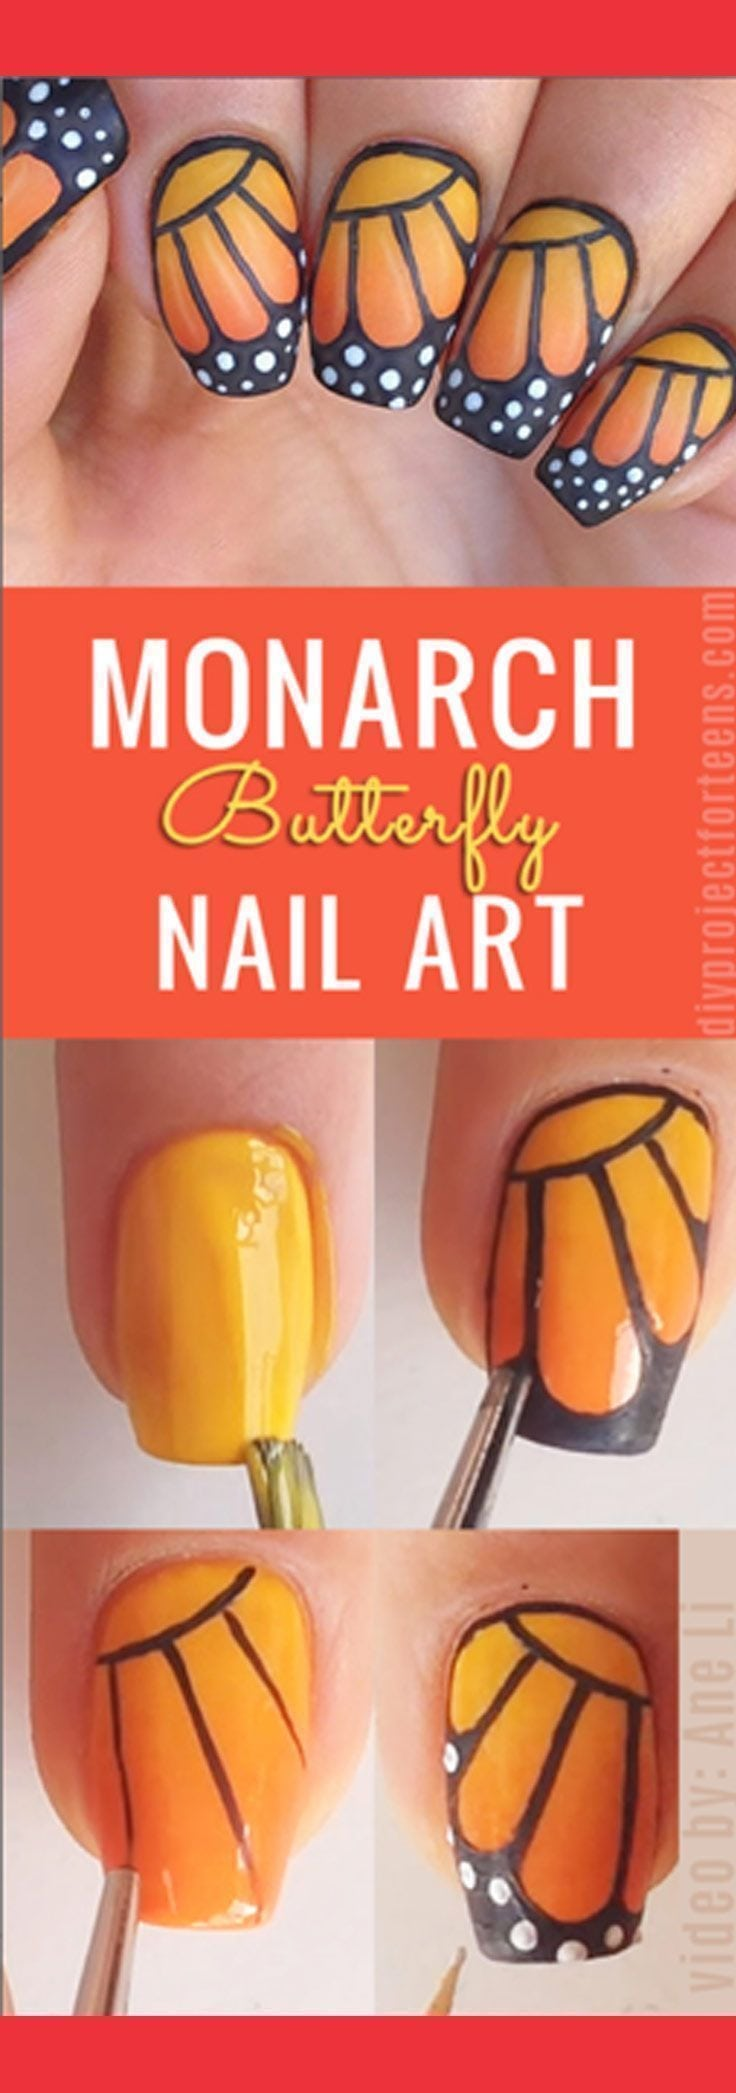 Cool Nail Art Ideas – How to do monarch butterfly nail art – tutorial DIY Manicure and Nail Design Ideas